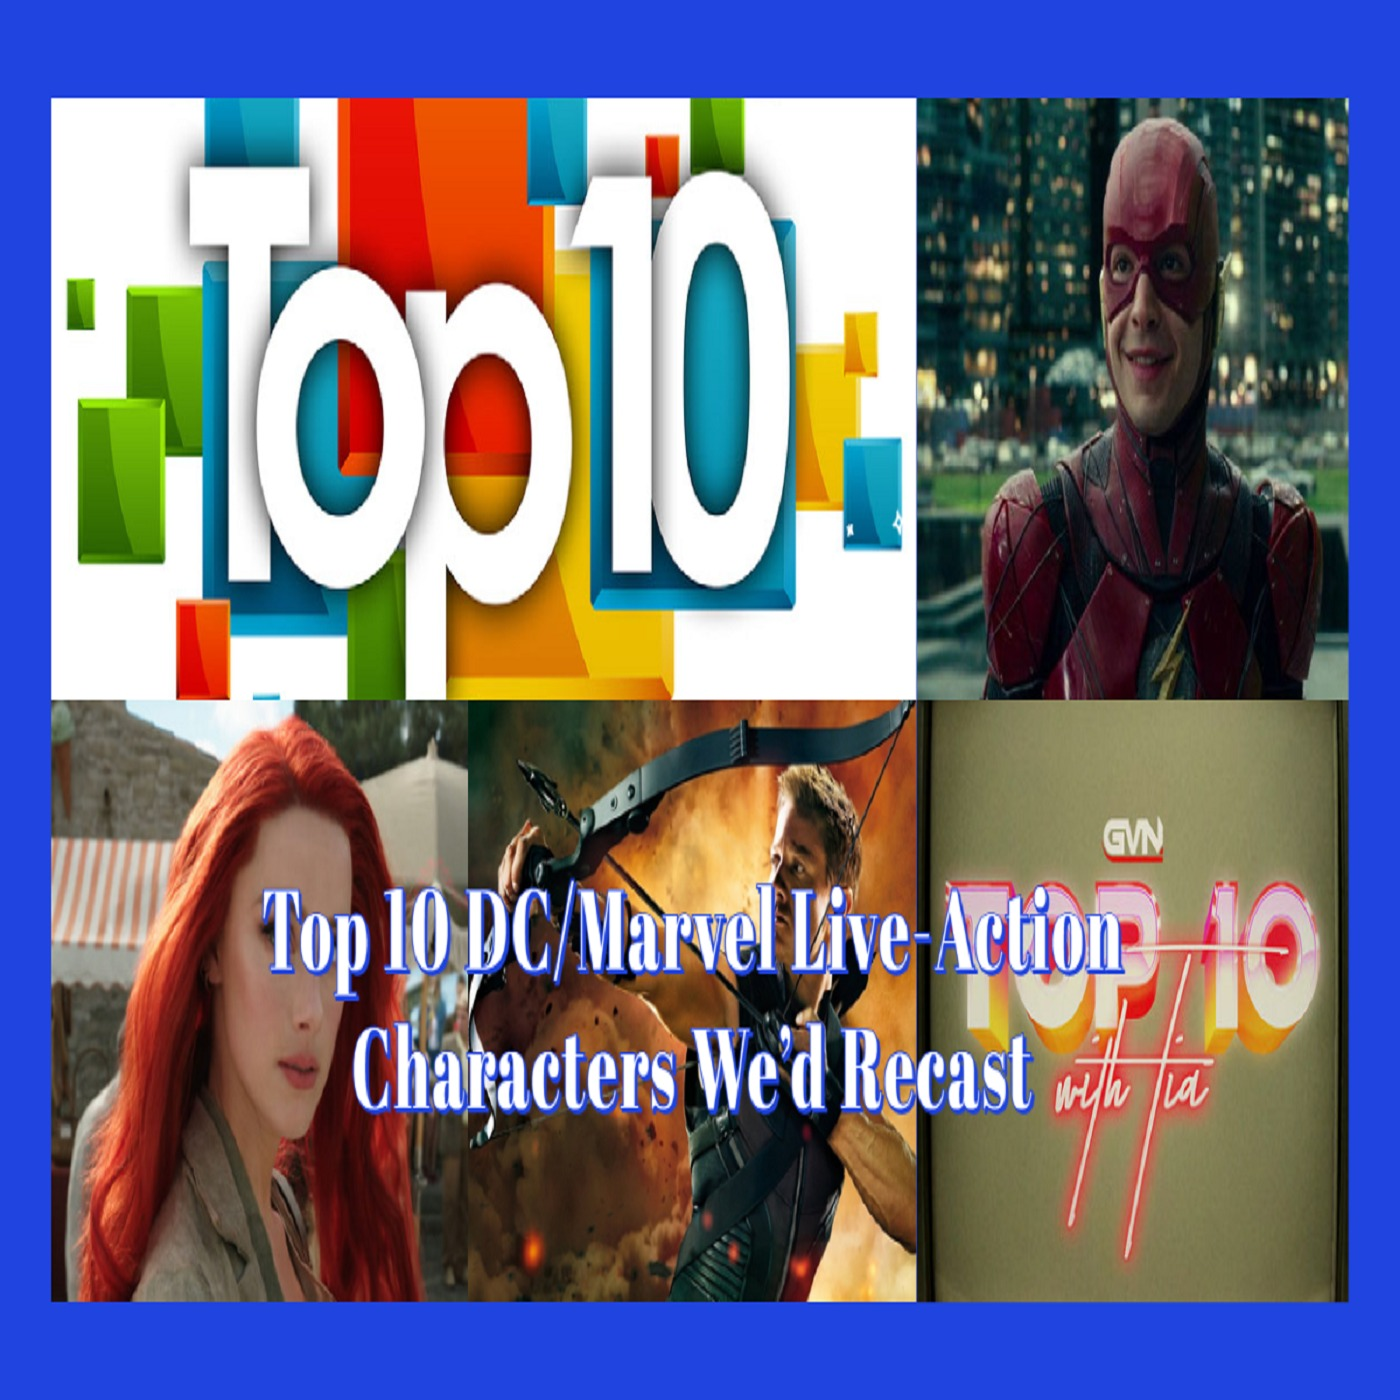 Top 10 DC/Marvel Live-Action Characters We'd Recast